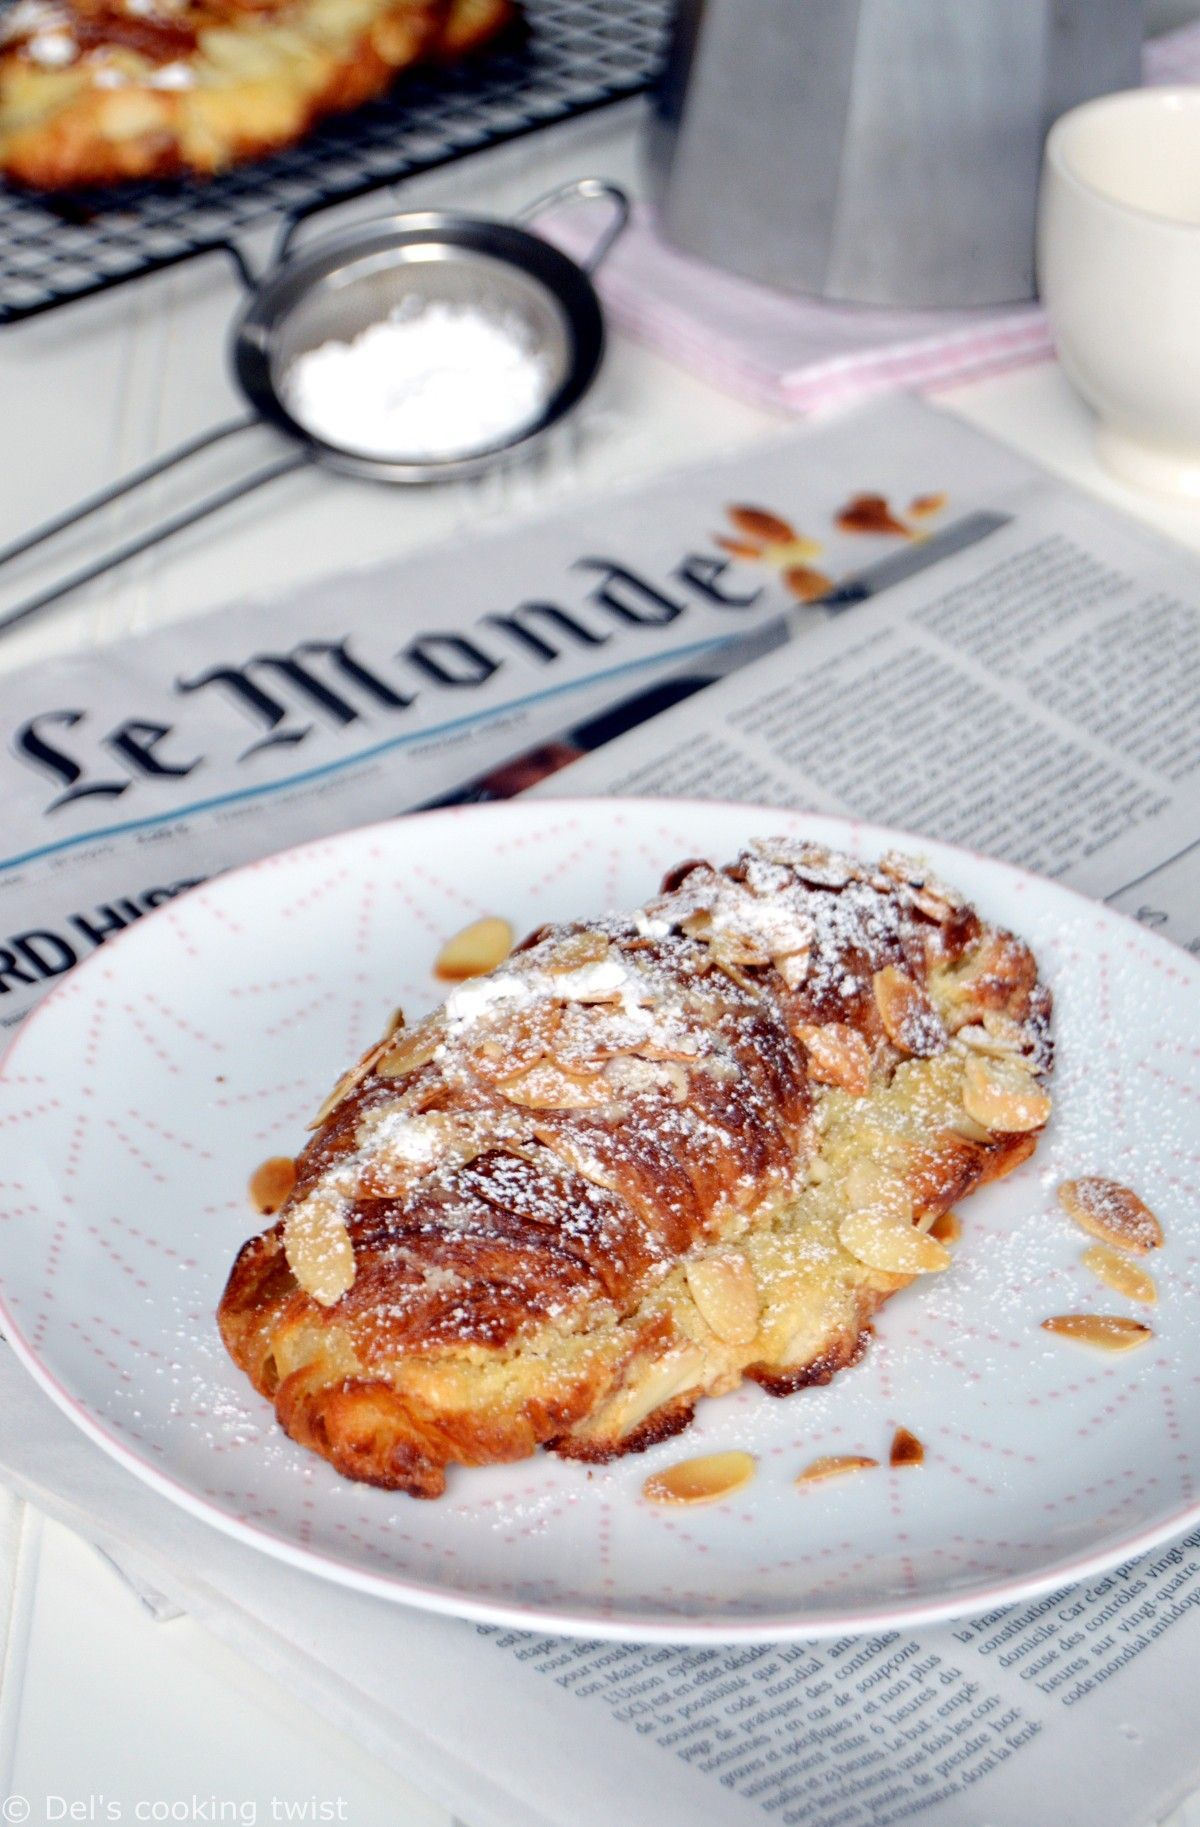 Almond Croissant Almond Croissant Almond Pastry Puff Pastry Recipes